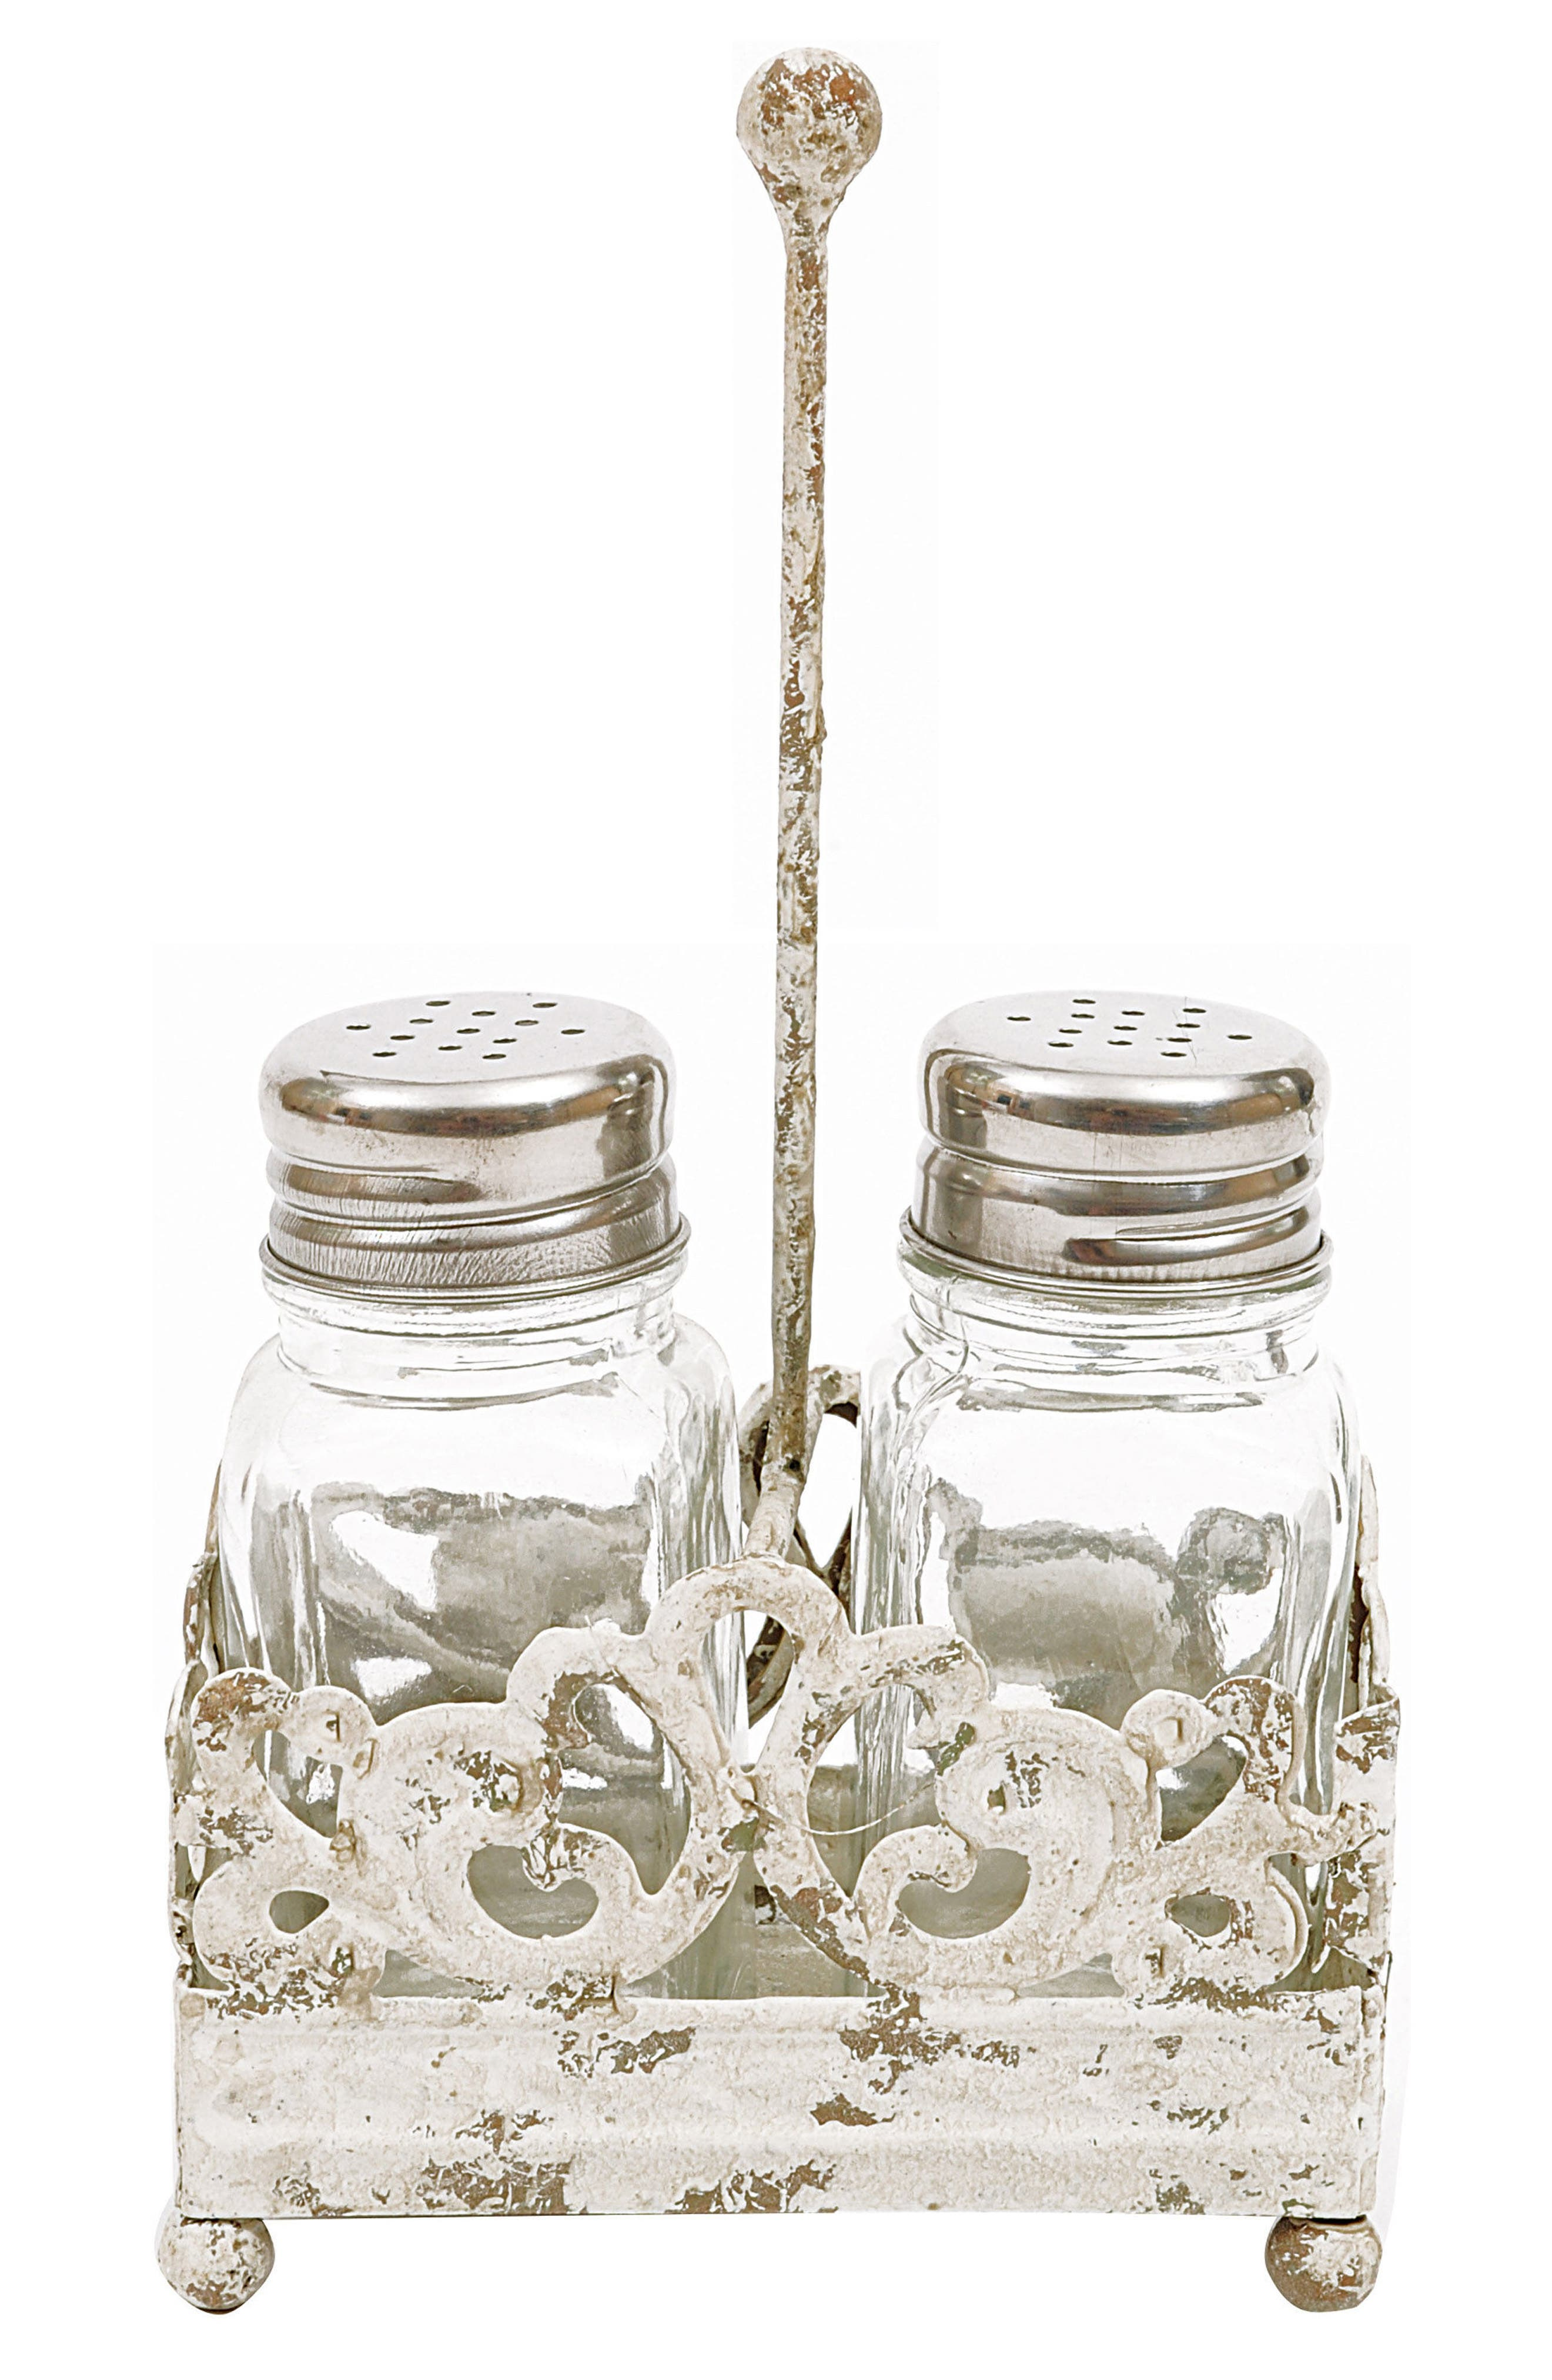 Salt & Pepper Shaker With Caddy,                             Main thumbnail 1, color,                             White